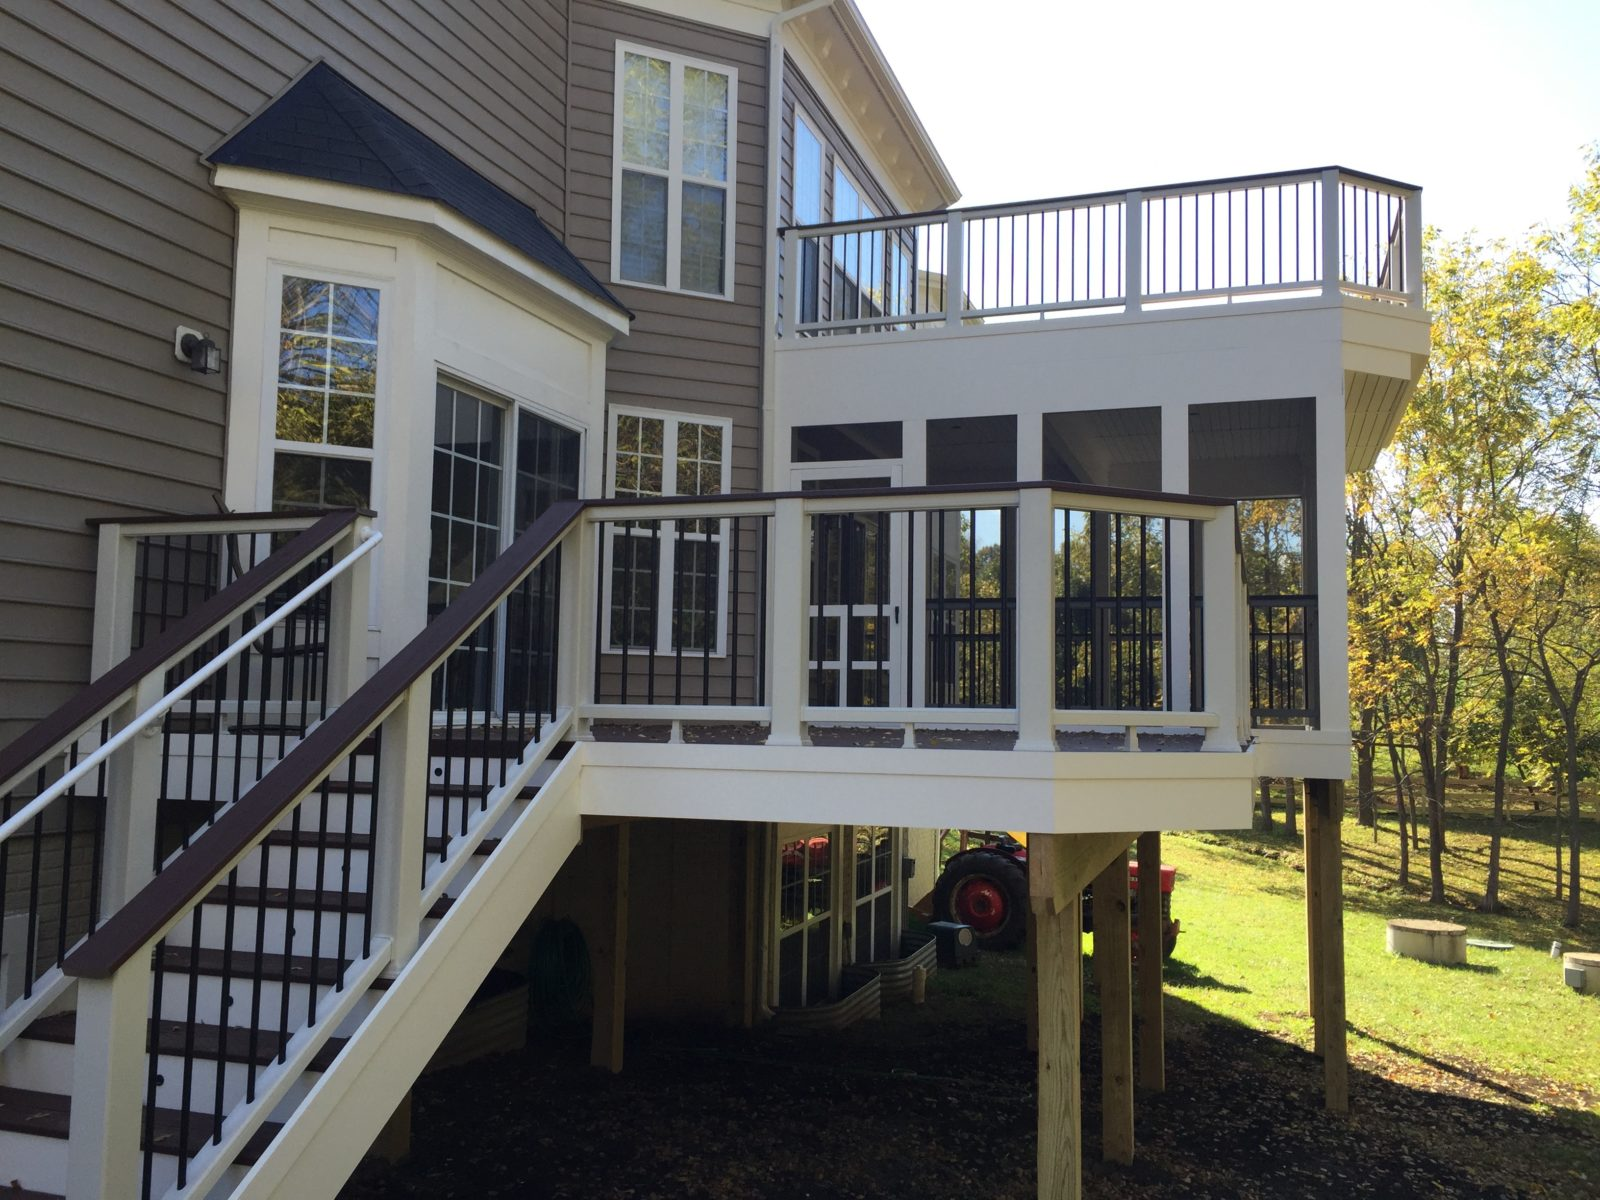 Double Deck with Screened in Porch